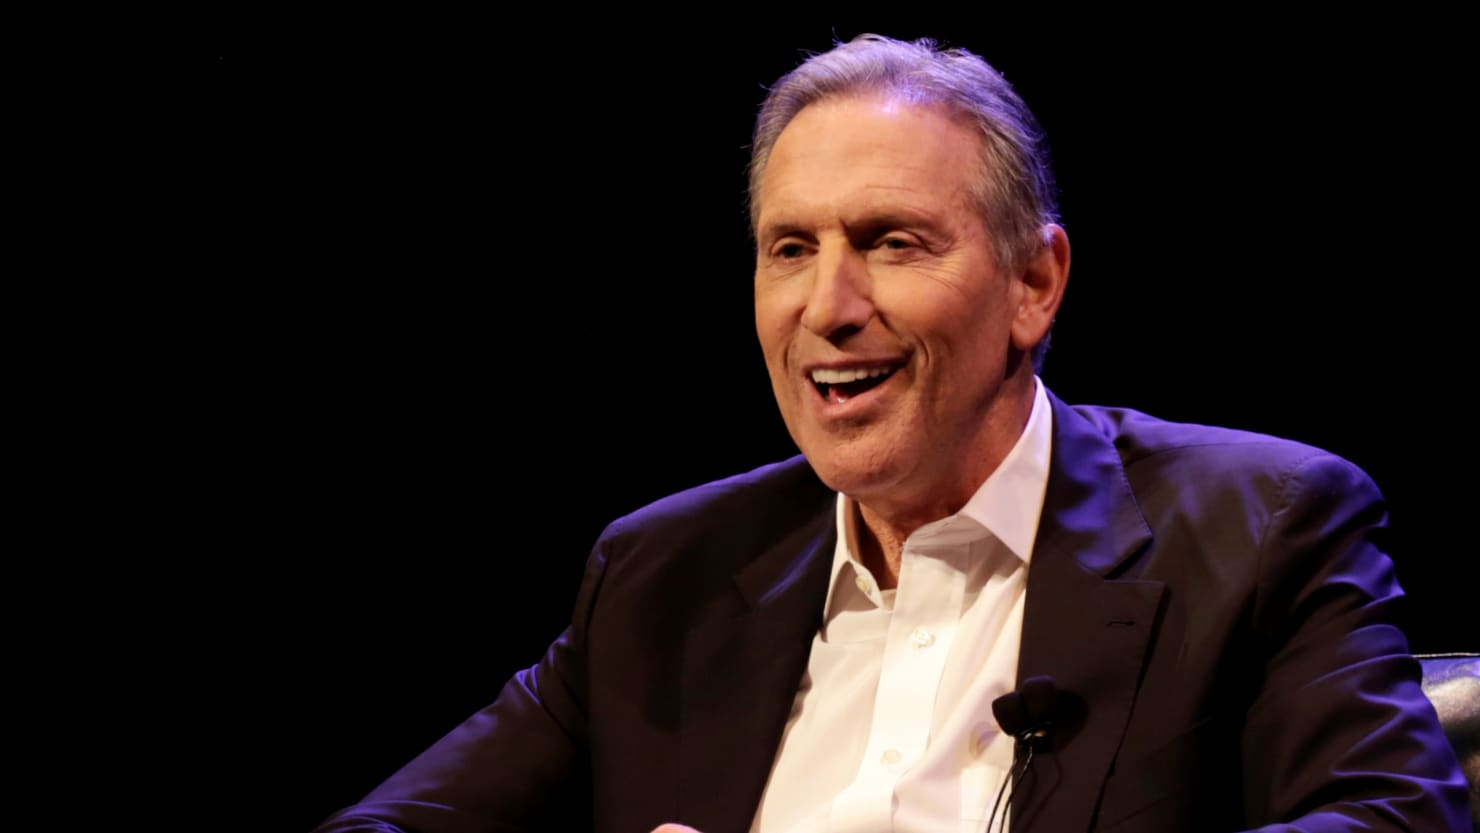 Howard Schultz Tells People to Clap During Speech